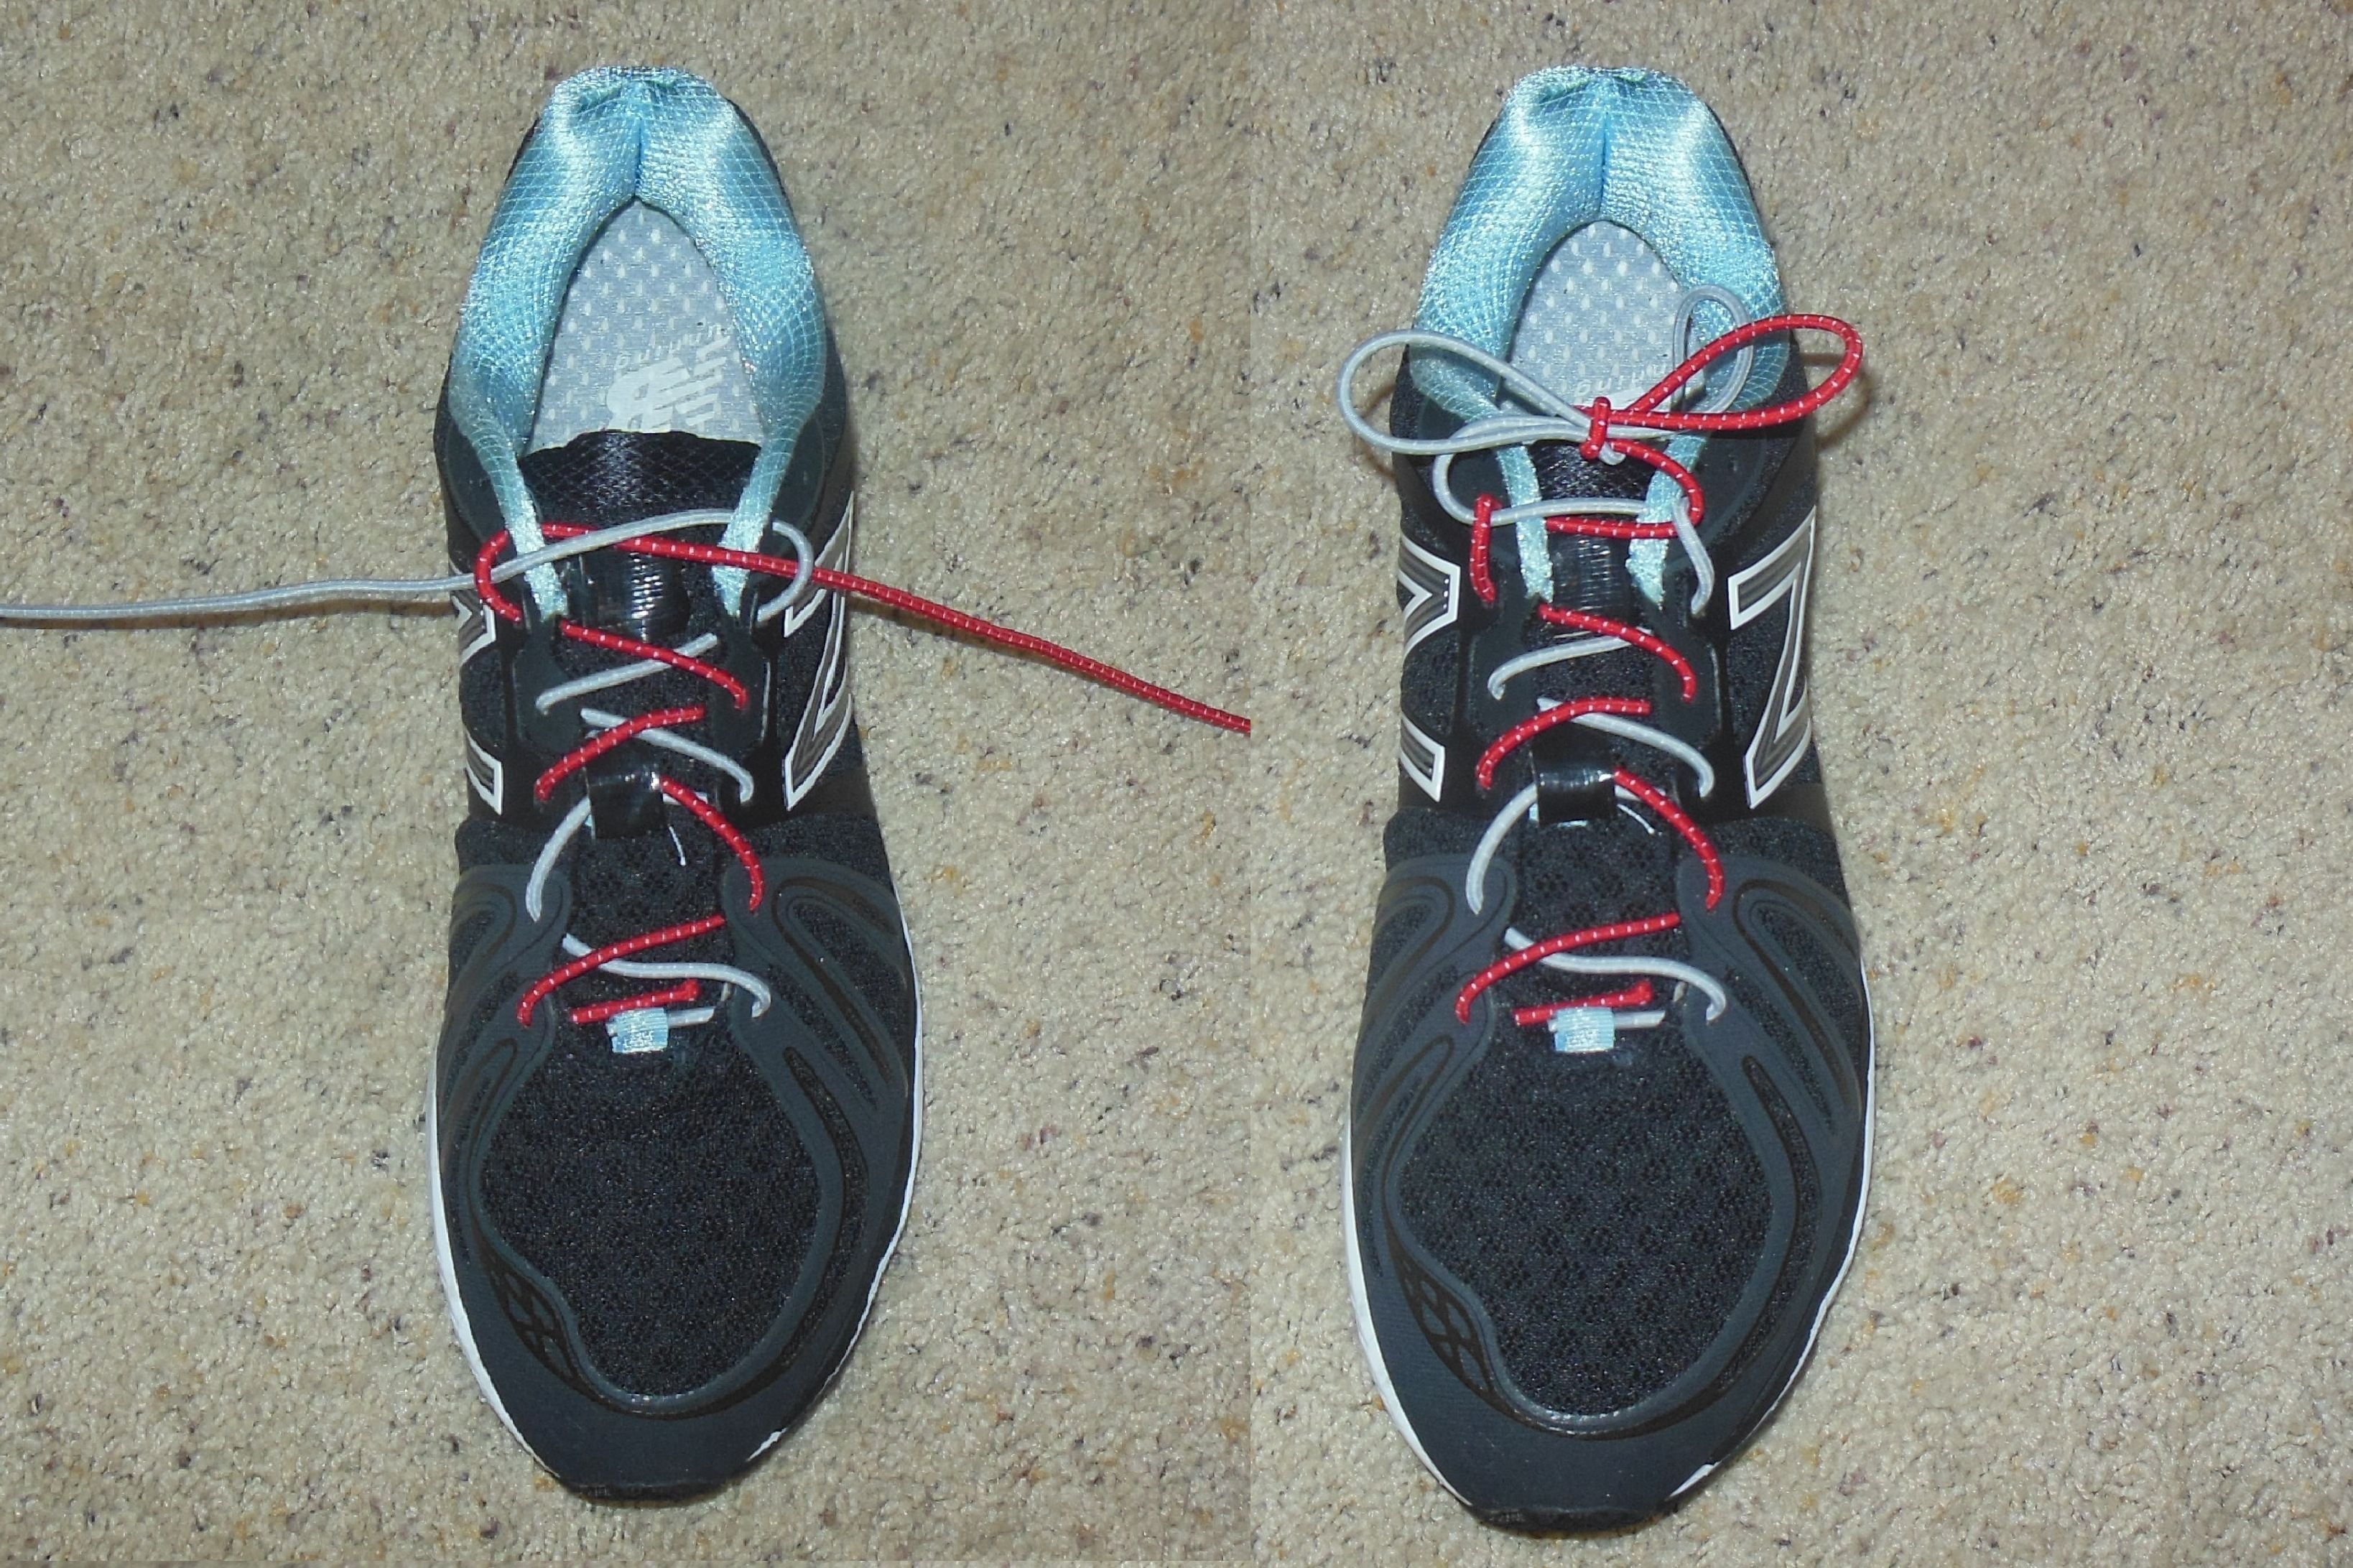 090ec761702d How to Lace Your Shoes for the Right Fit